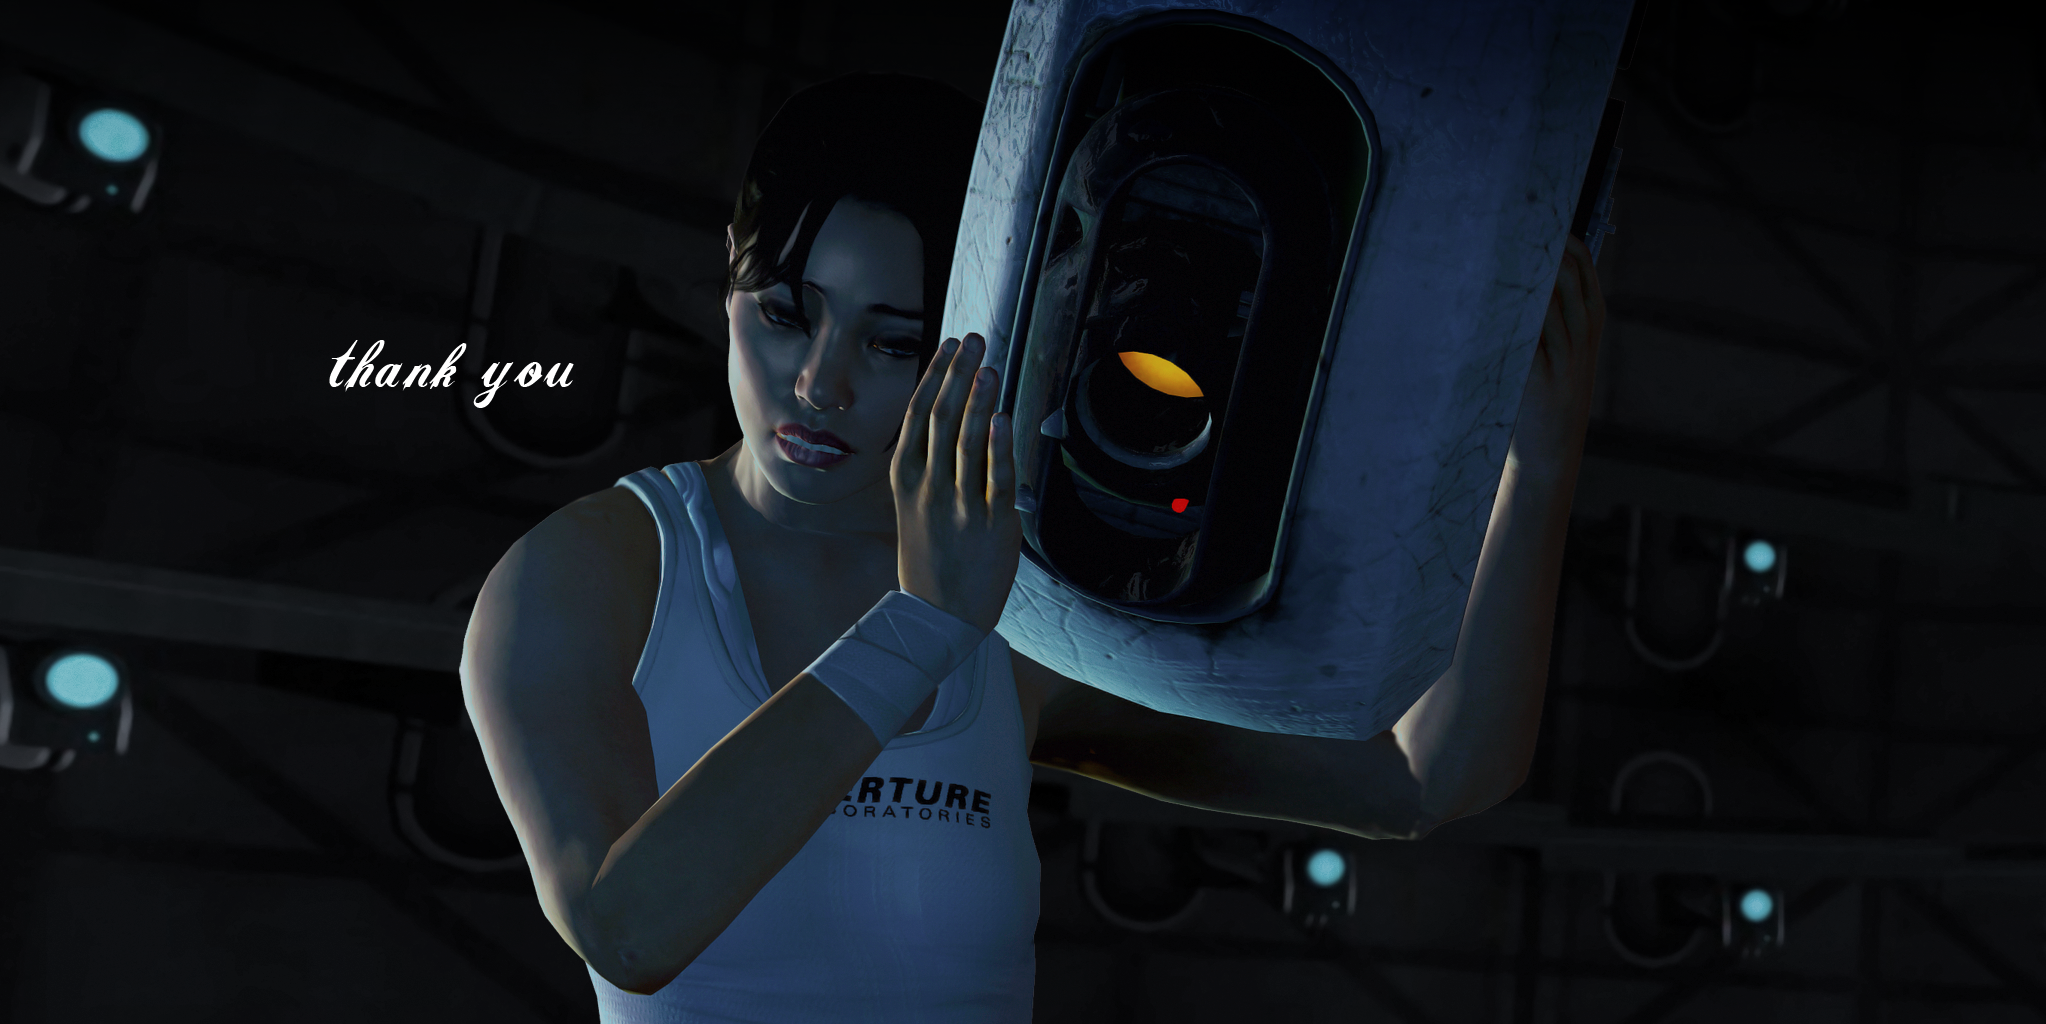 Chell And GLaDOS Wallpaper By Nightfable On DeviantArt